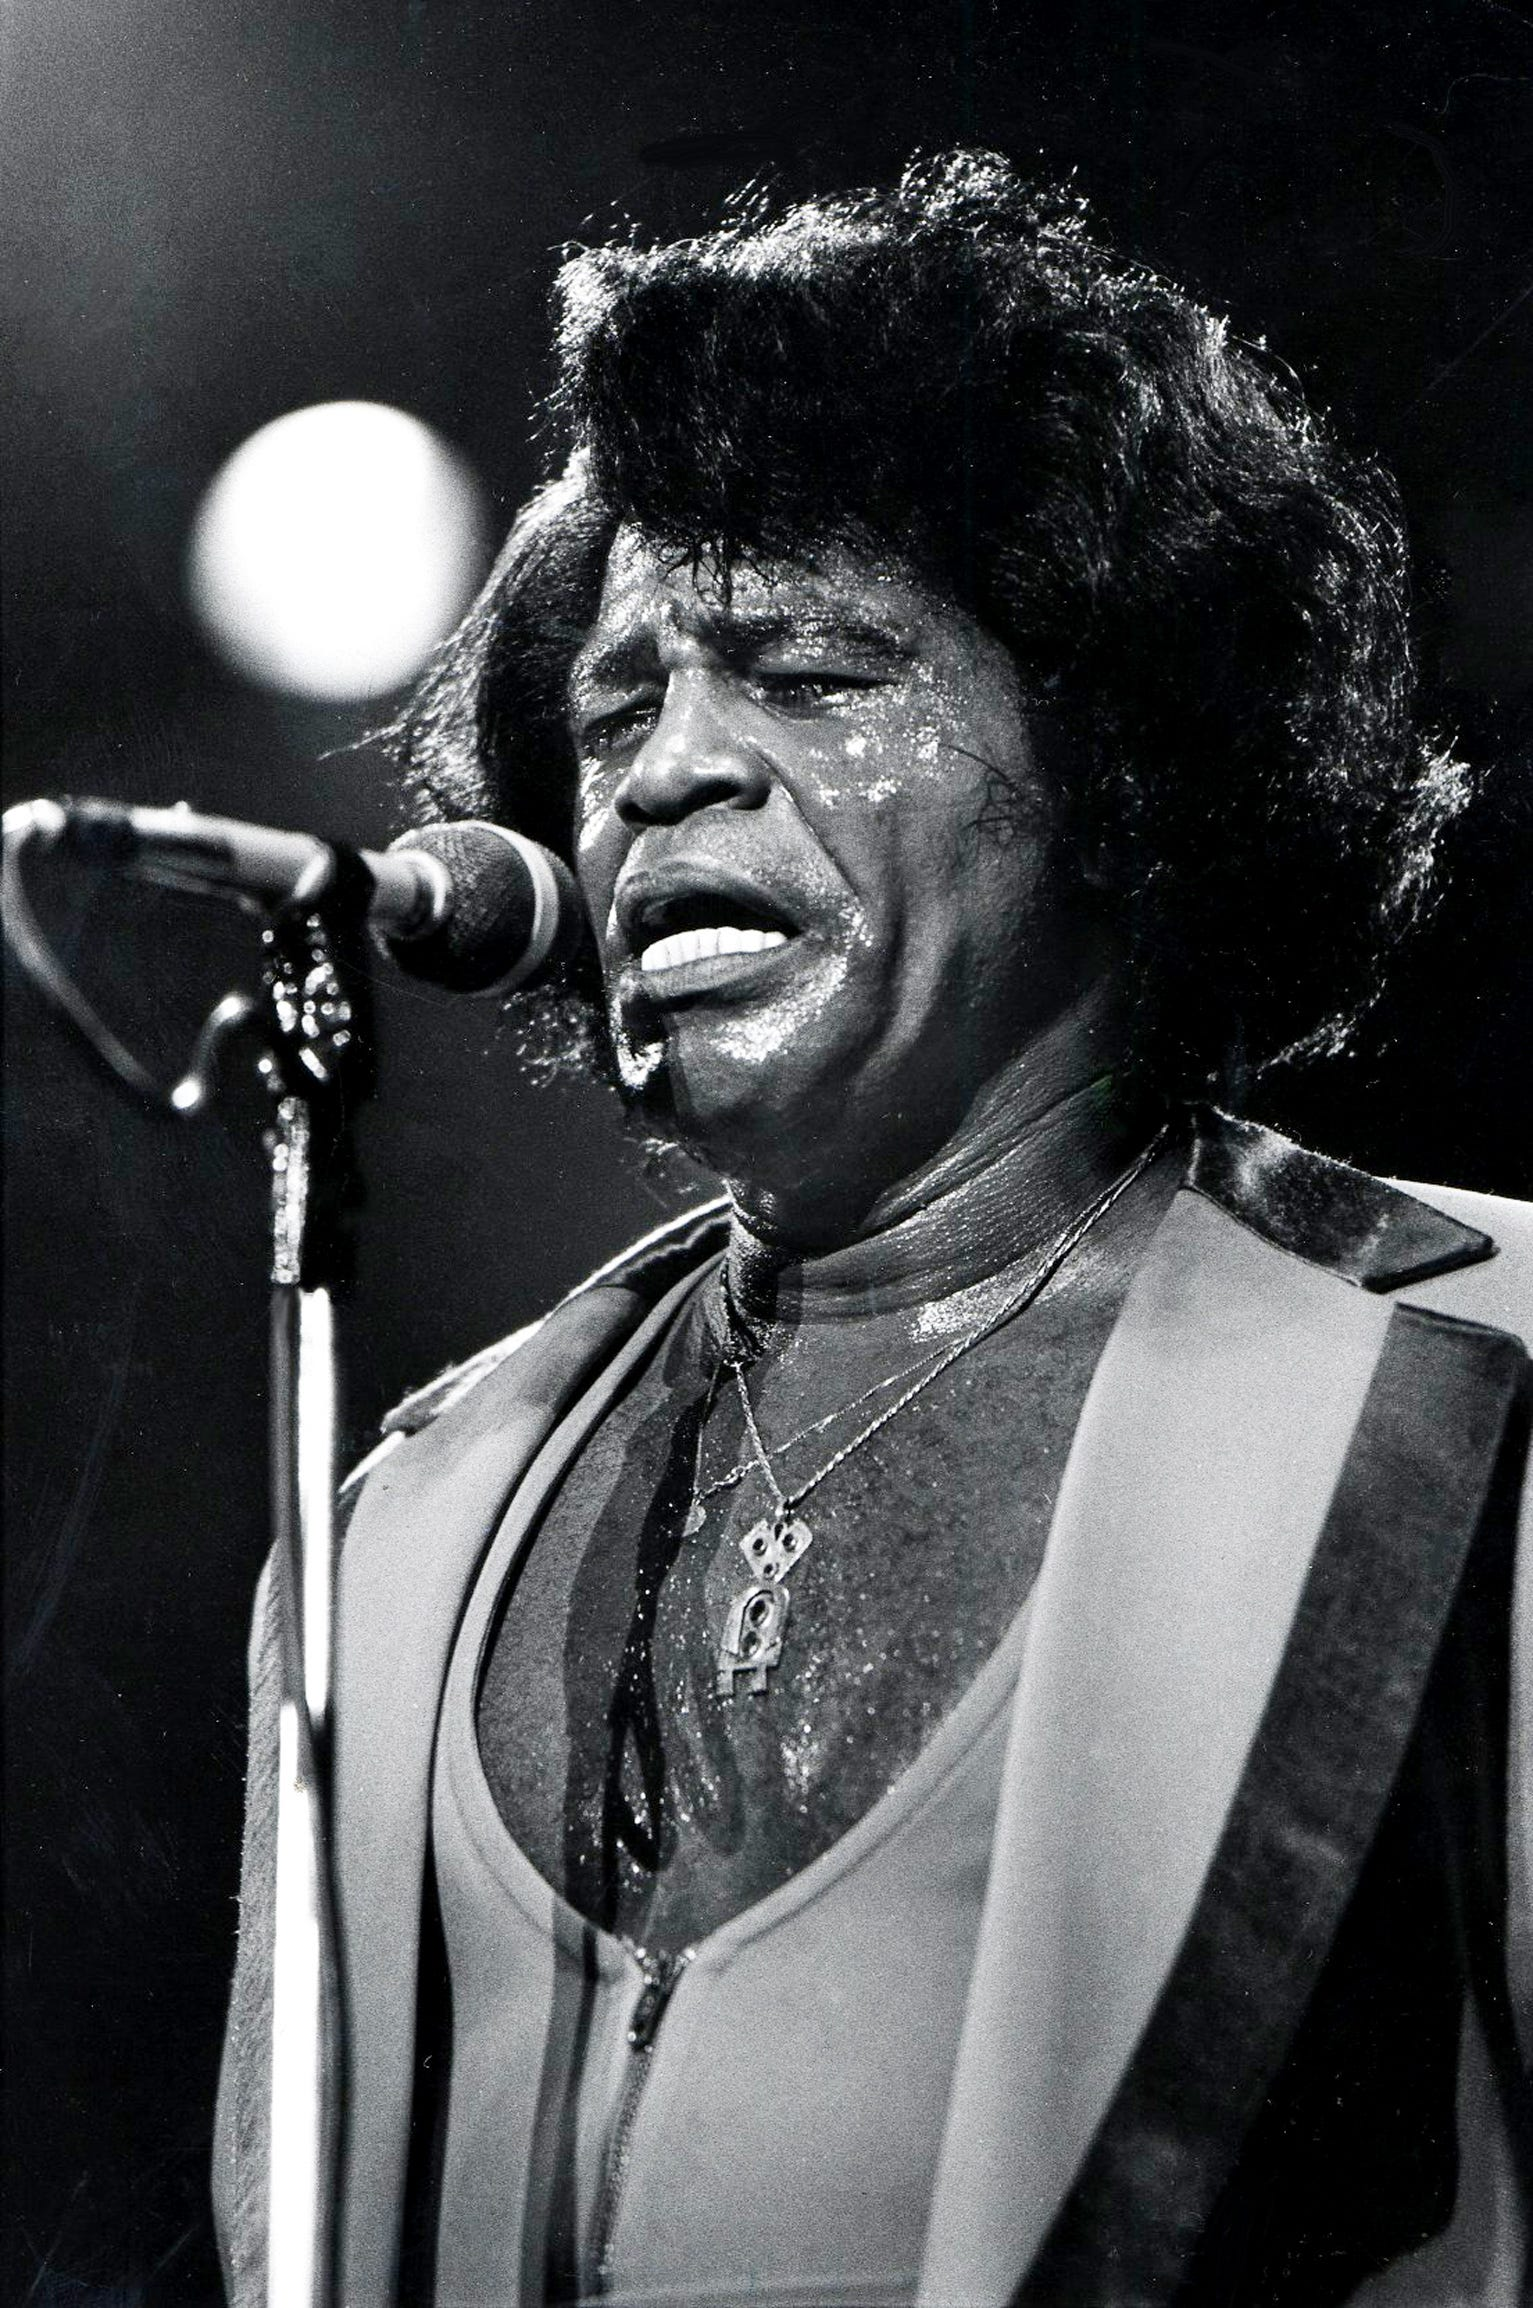 The intensely energetic performance of James Brown has his sweating up a storm at the ninth annual Volunteer Jam nine-hour marathon concert at the Municipal Auditorium Jan. 22, 1983. Brown and his band had the longest time on stage of any of the Jam guests.